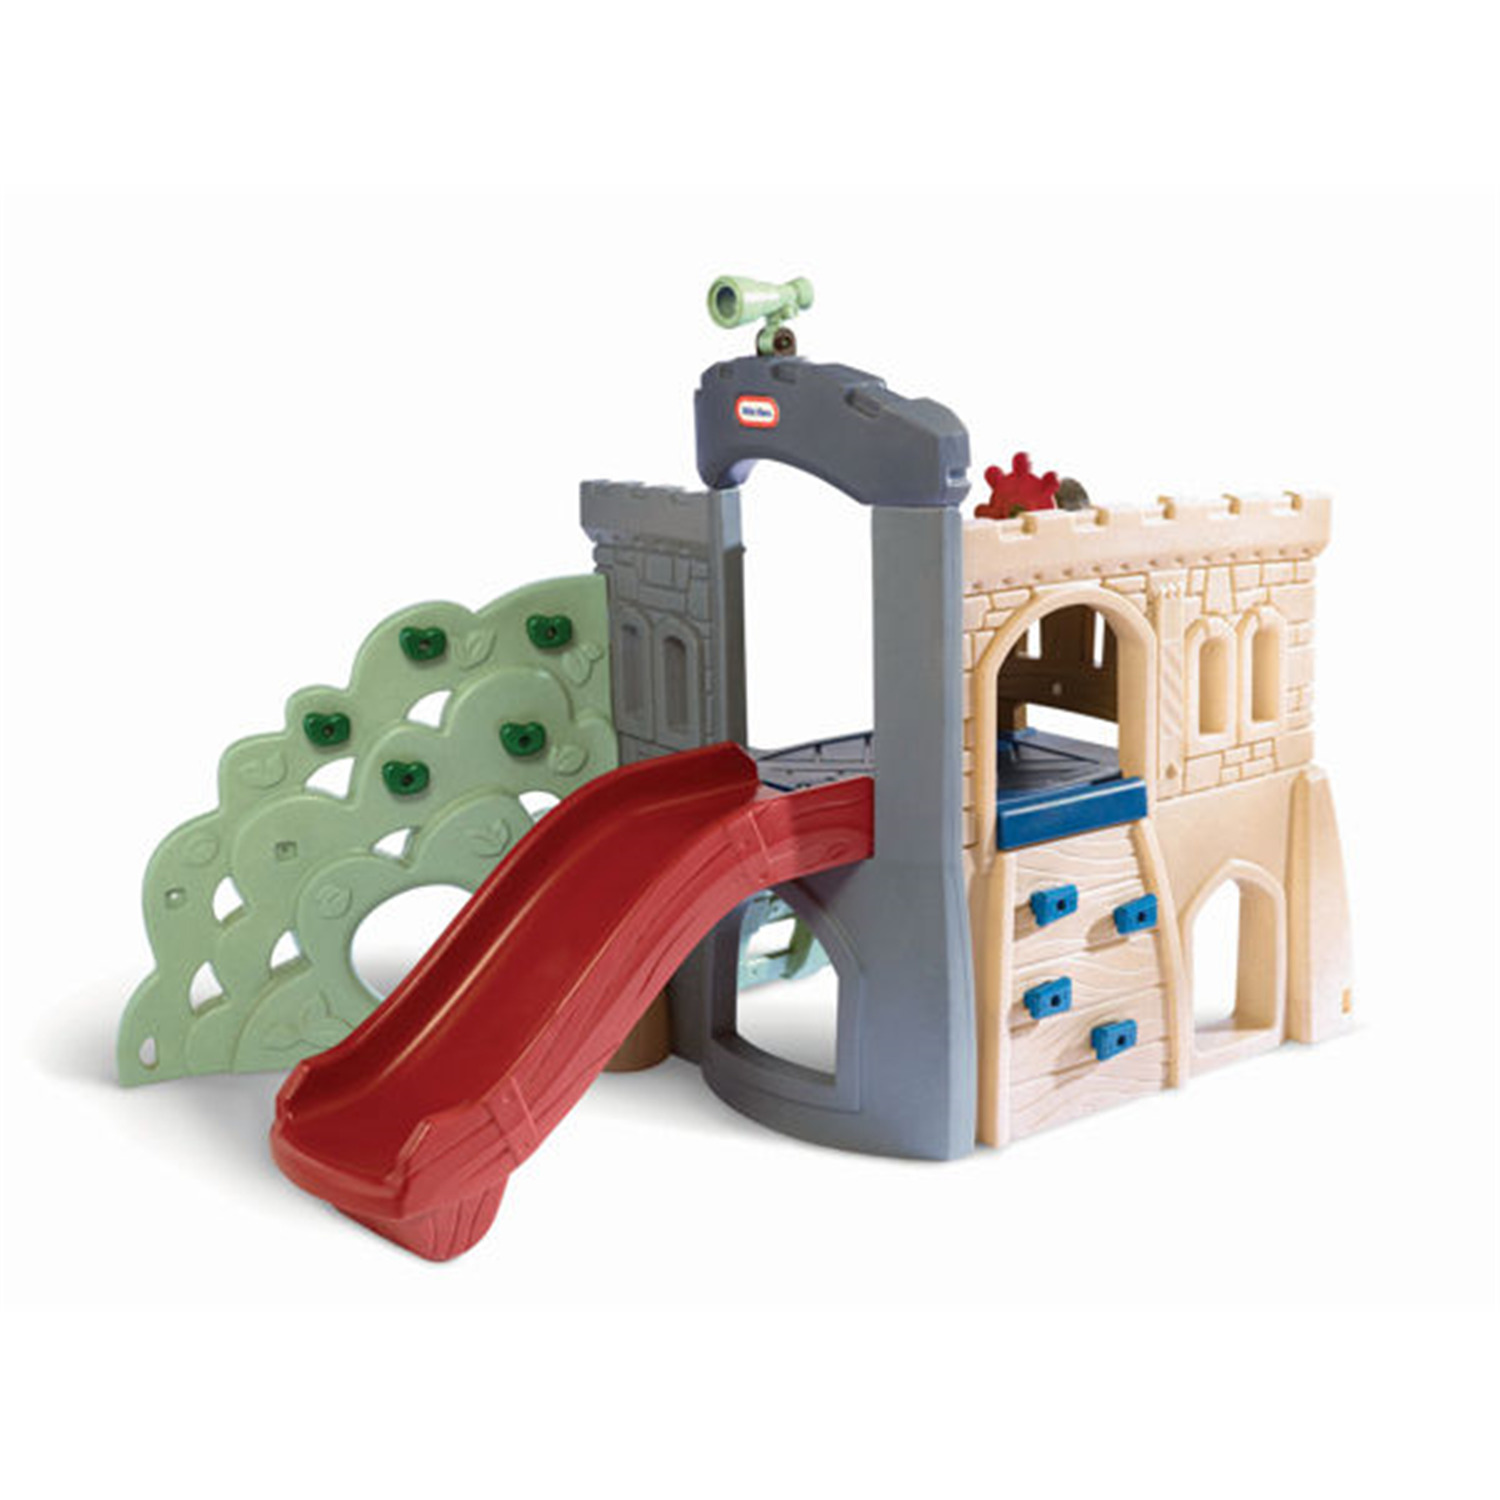 little tikes endless adventures rock climber and slide instructions